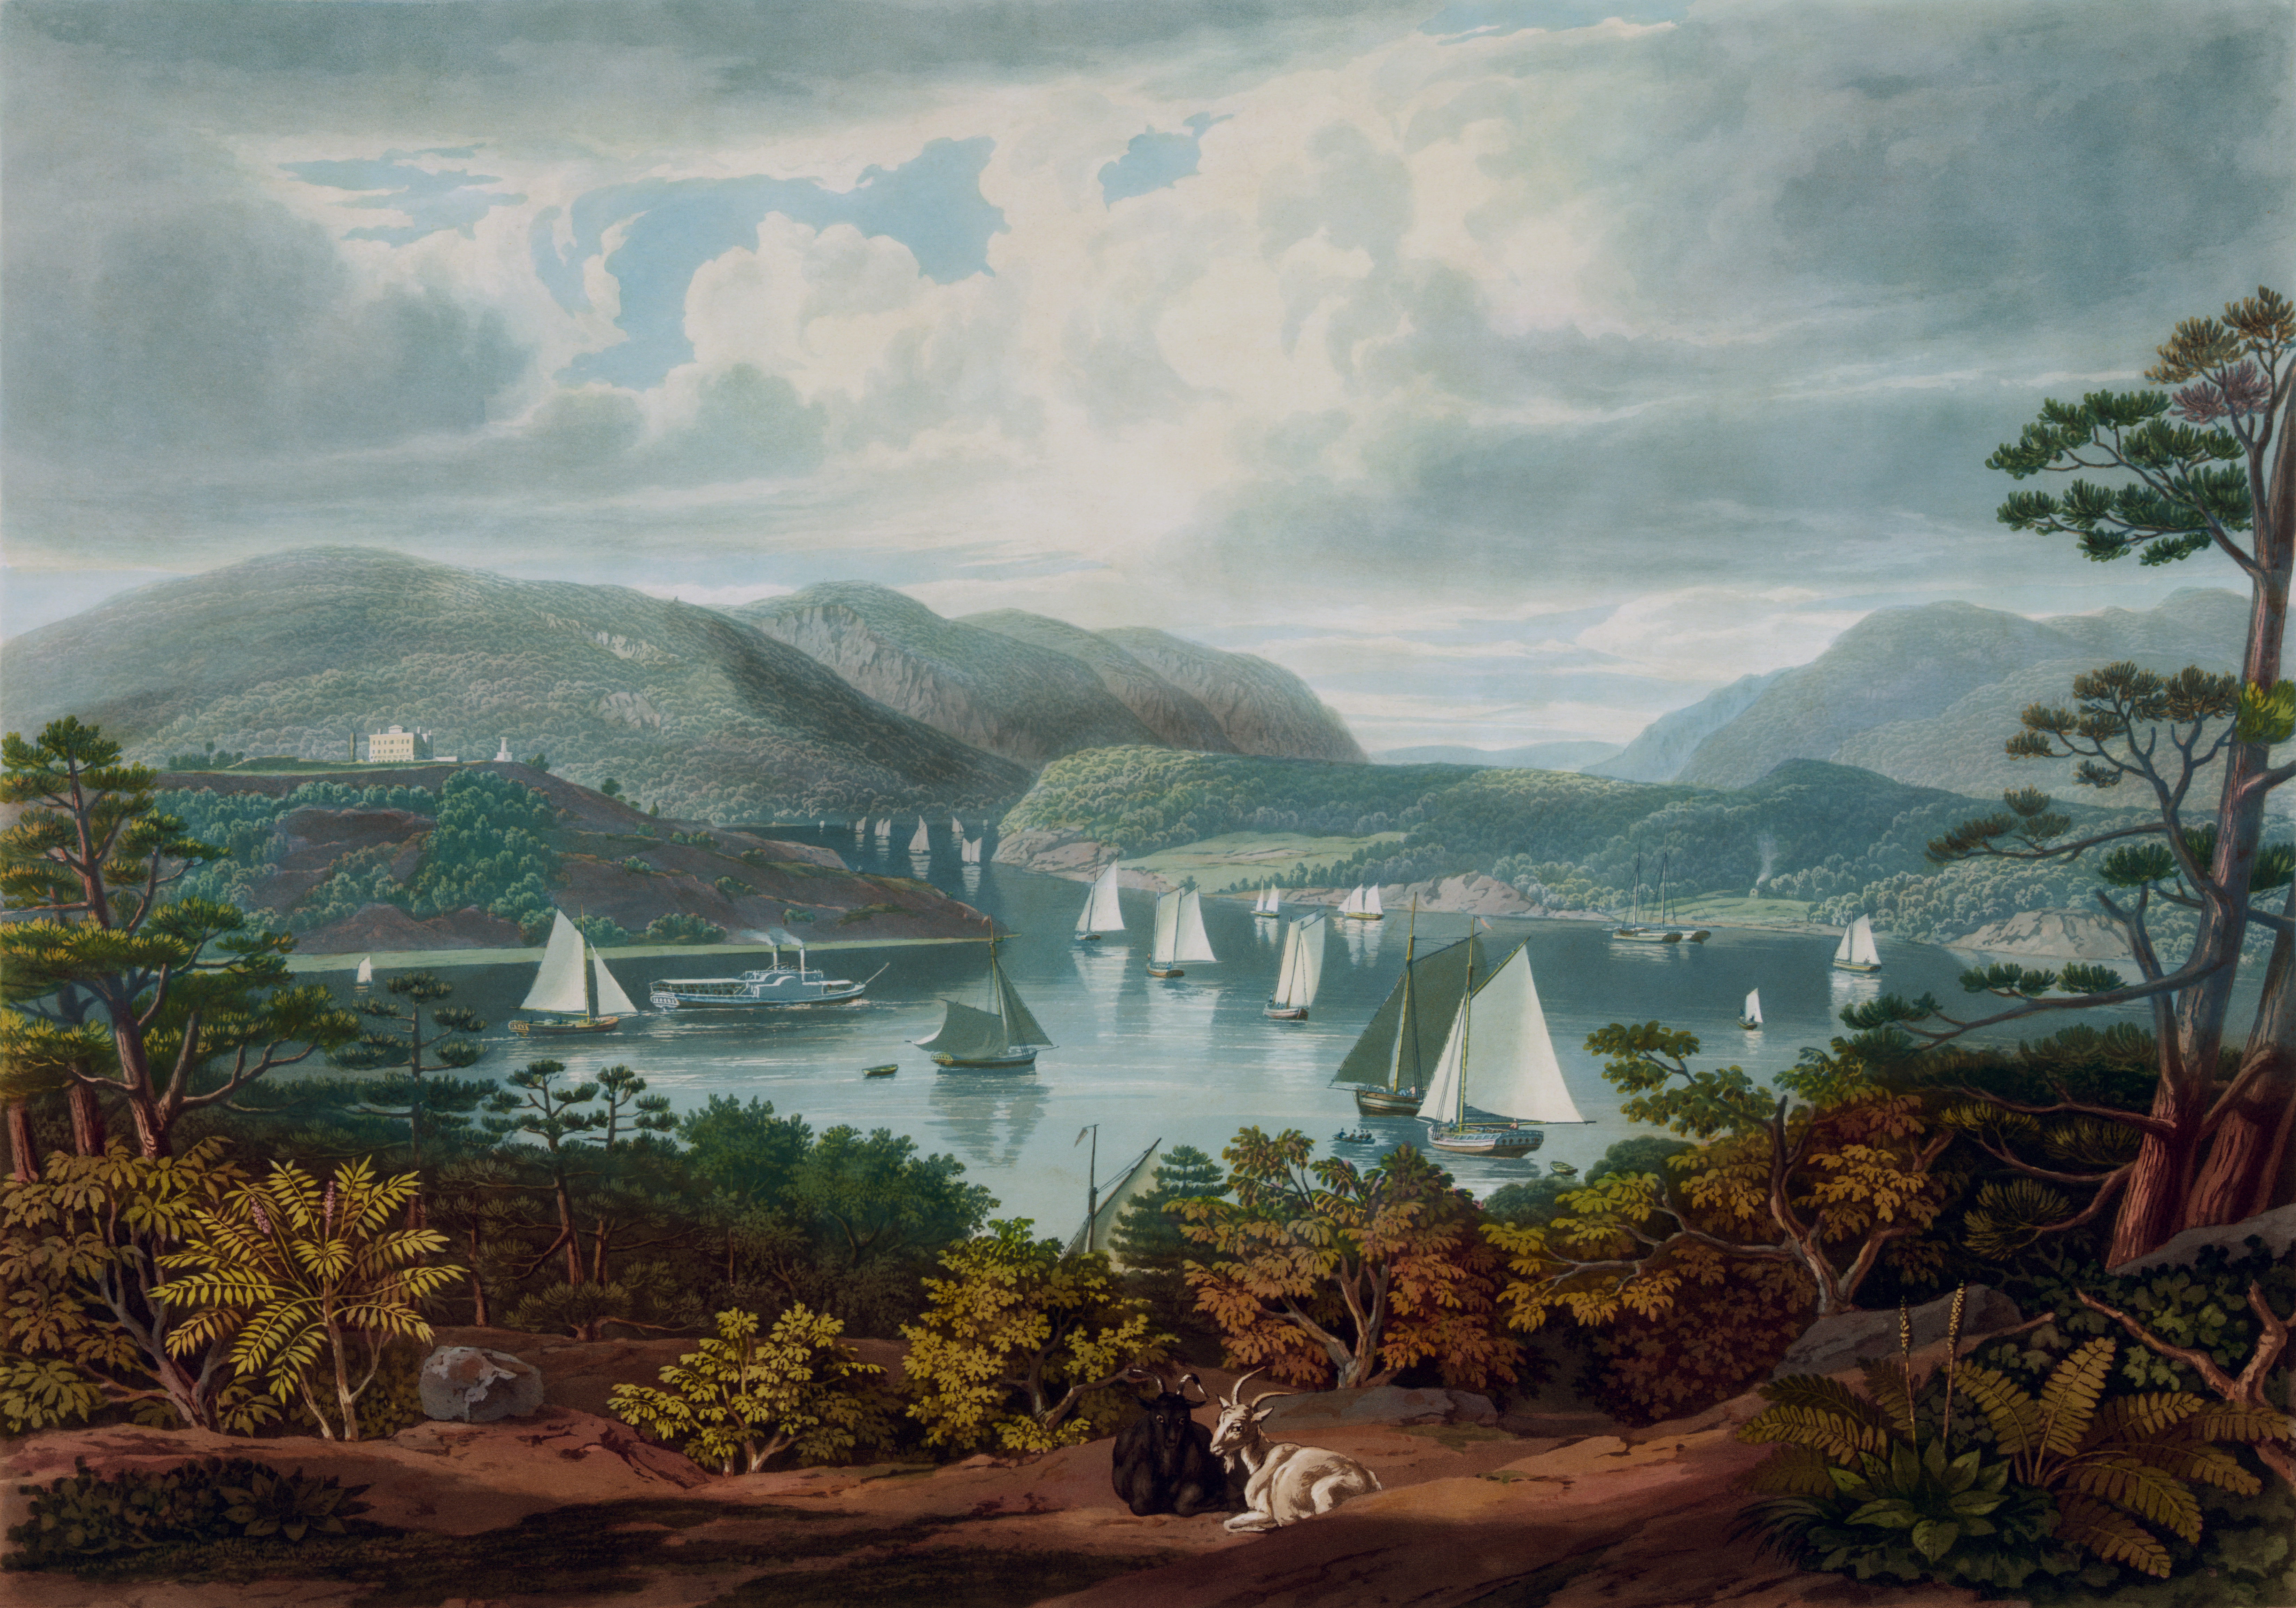 West Point, from Phillipstown. Color aquatint showing the original buildings of the United States Military Academy, with boats on Hudson River, two goats on hill in foreground, mountains in background. Printed by J. & G. Neale, copyright by Parker & Clover, 1831. From the collection of the Library of Congress, Prints and Photographs Division Washington, D.C. Reproduction Number: LC-DIG-pga-00209 (digital file from original print) LC-USZC4-5659 (color film copy transparency) LC-USZ62-12209 (b&w film copy neg.) LC-USZC4-501 (color film copy transparency) LC-USZC2-1875 (color film copy slide) Call Number: PGA - Bennett--West Point, from Phillipstown (D size) [P&P]